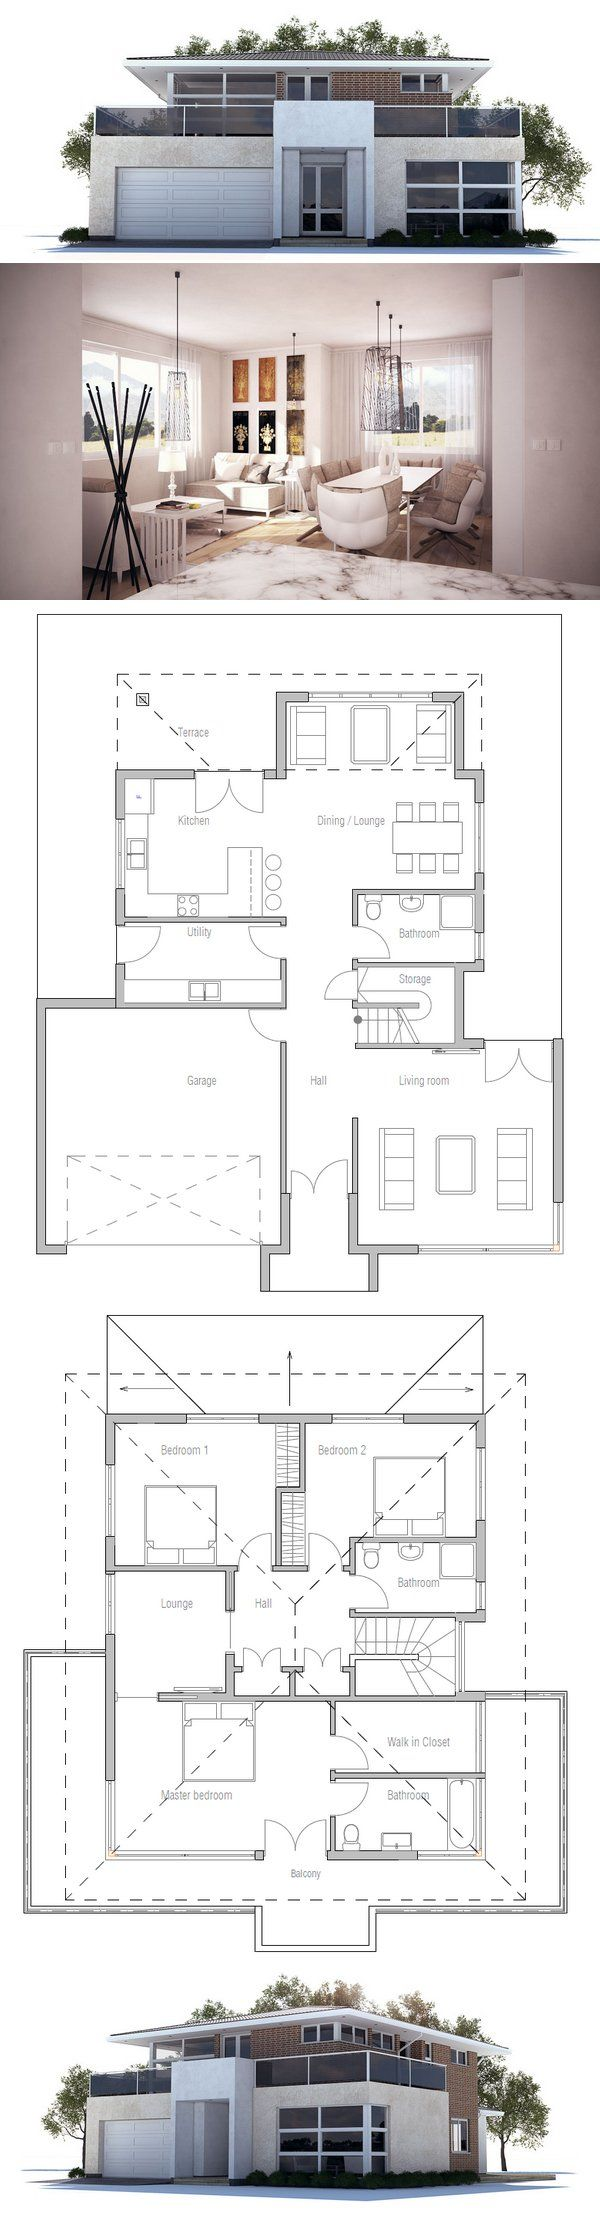 Fabulous 17 Best Ideas About Modern House Plans On Pinterest Modern Floor Largest Home Design Picture Inspirations Pitcheantrous